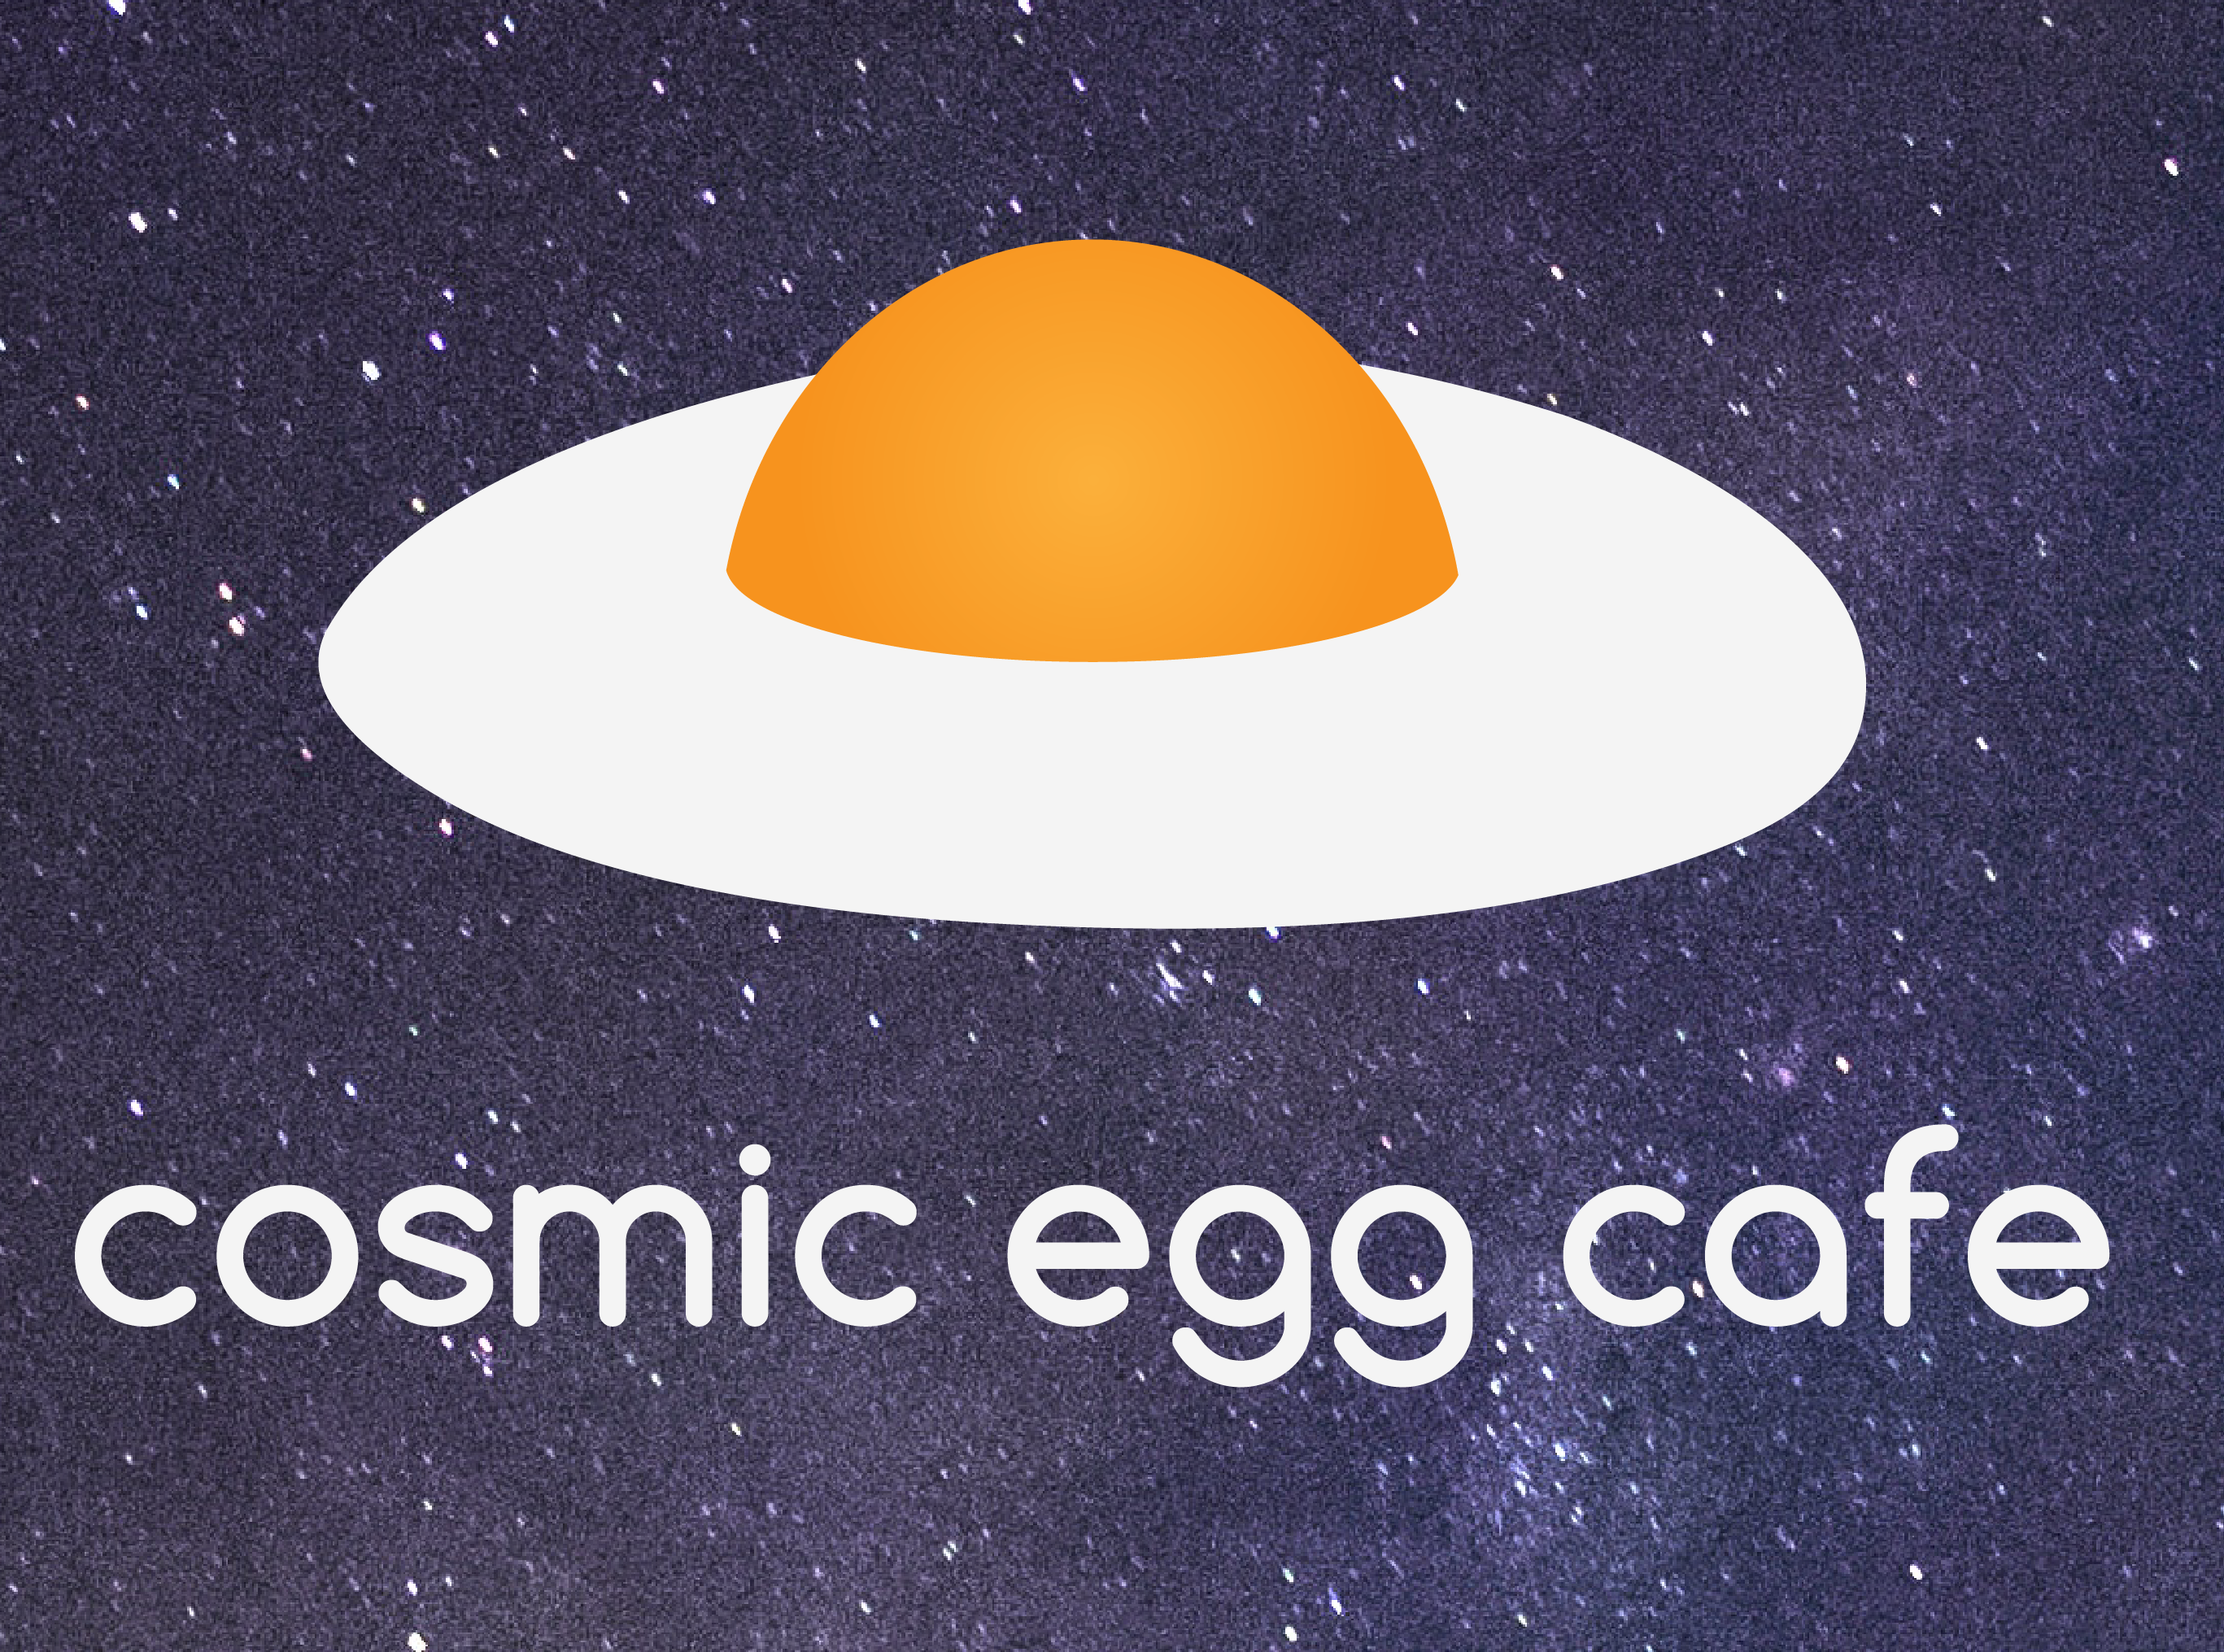 Cosmic Egg Cafe logo